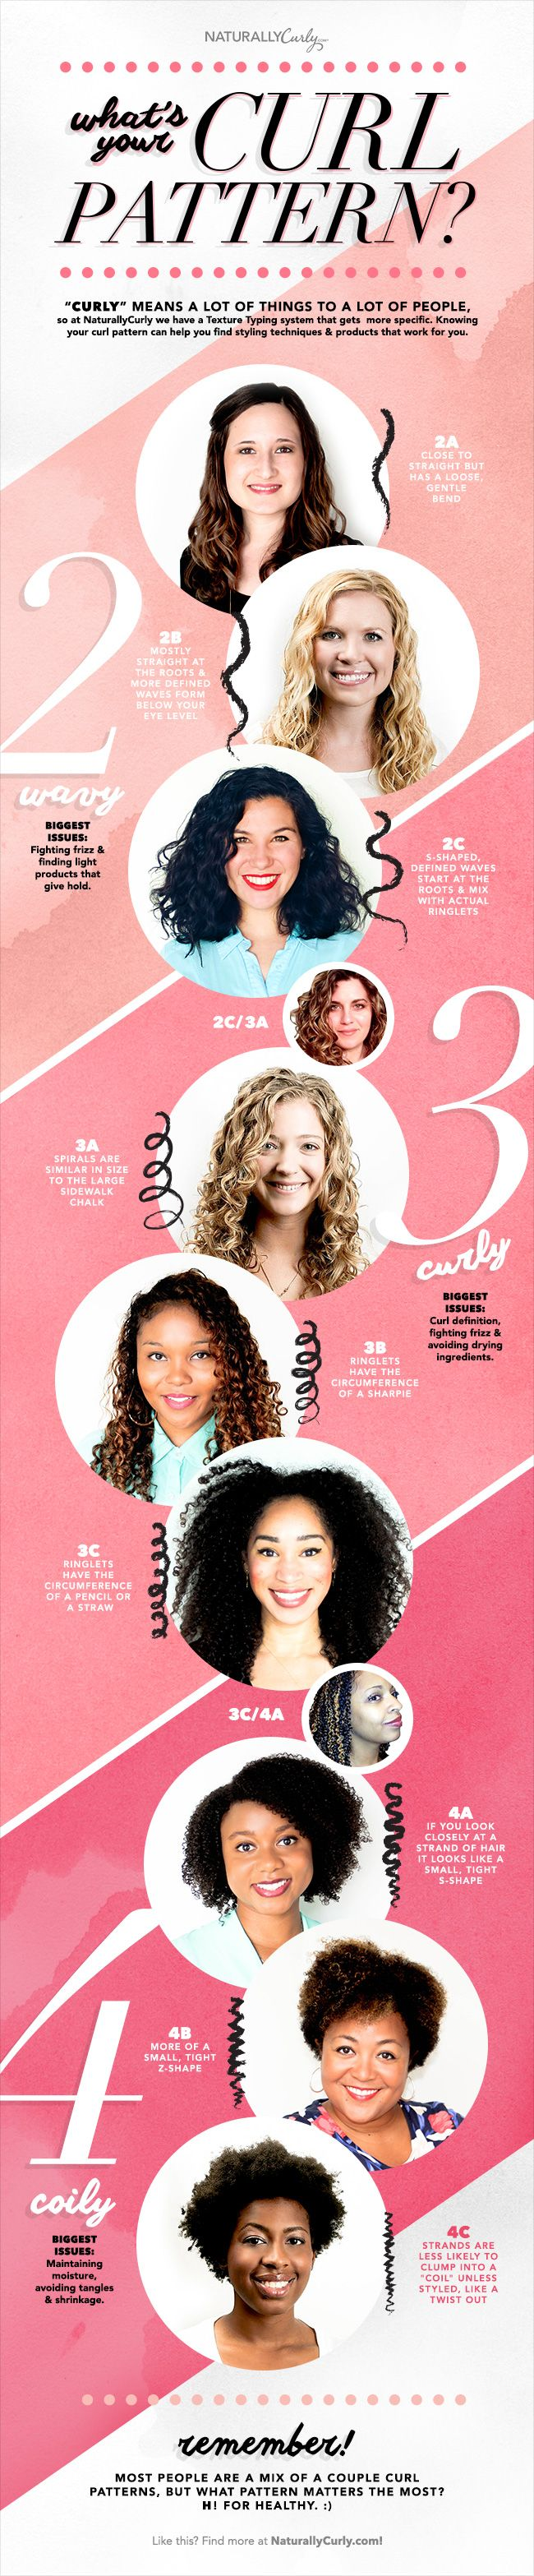 CURLY HAIR GUIDE: WHAT'S YOUR CURL PATTERN? https://www.pinterest.com/naturallycurly/